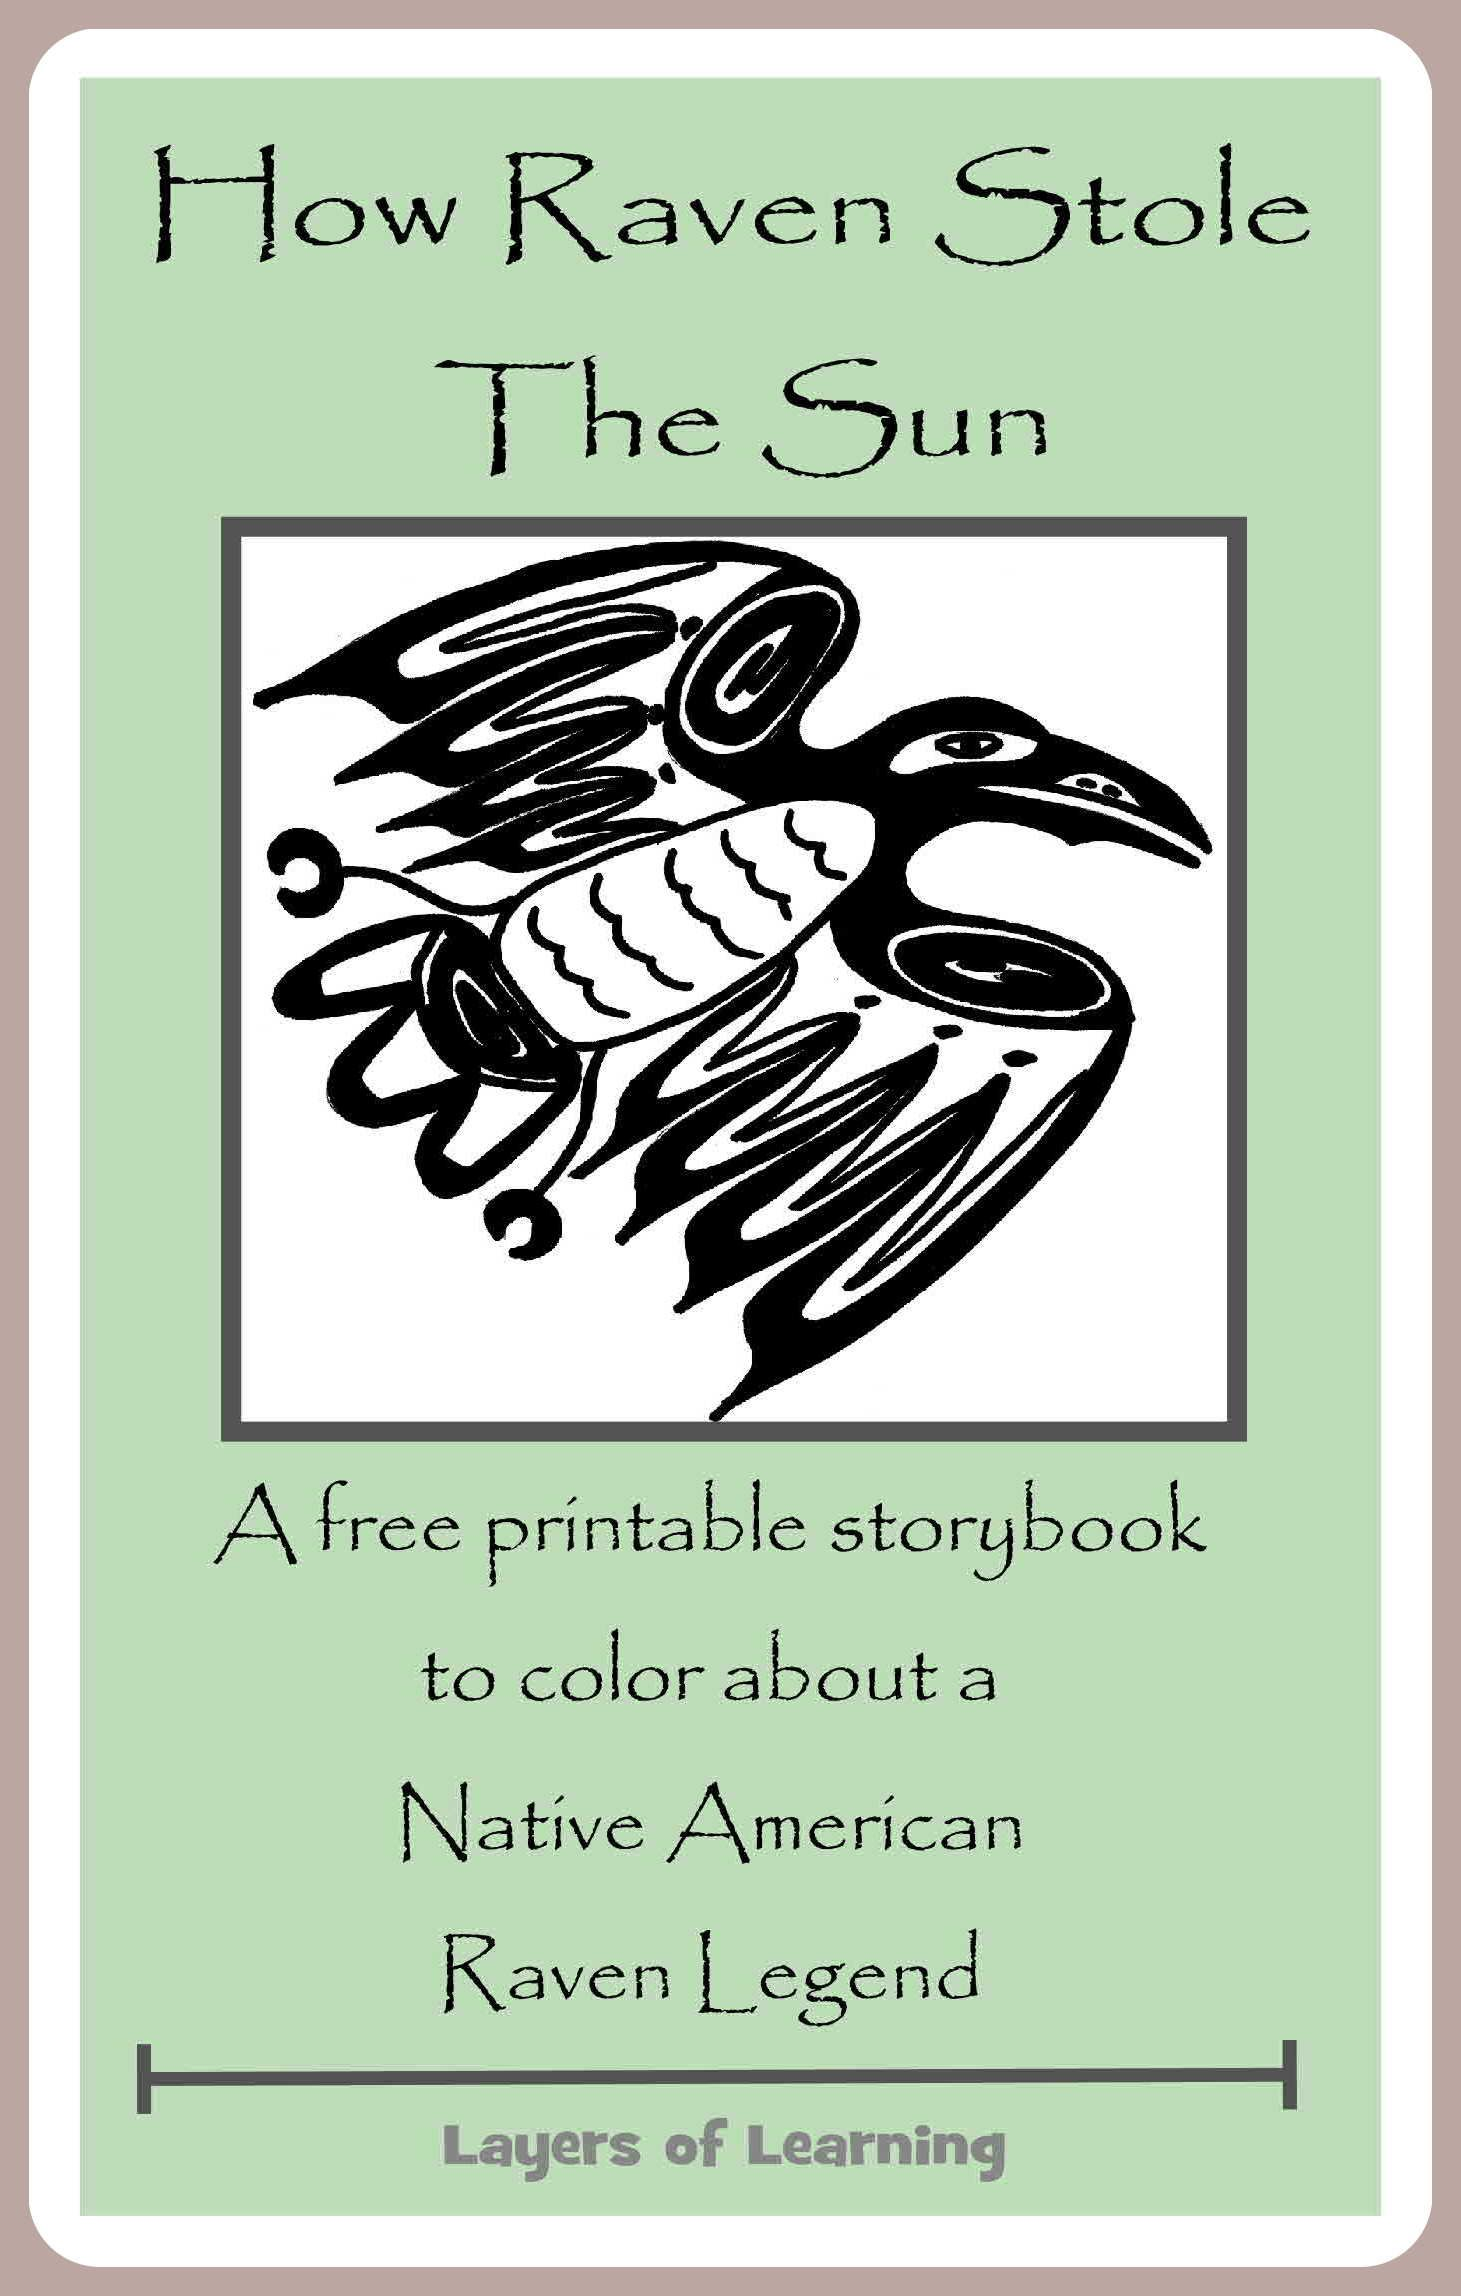 How Raven Stole The Sun - A Native American Raven Legend | Free ...